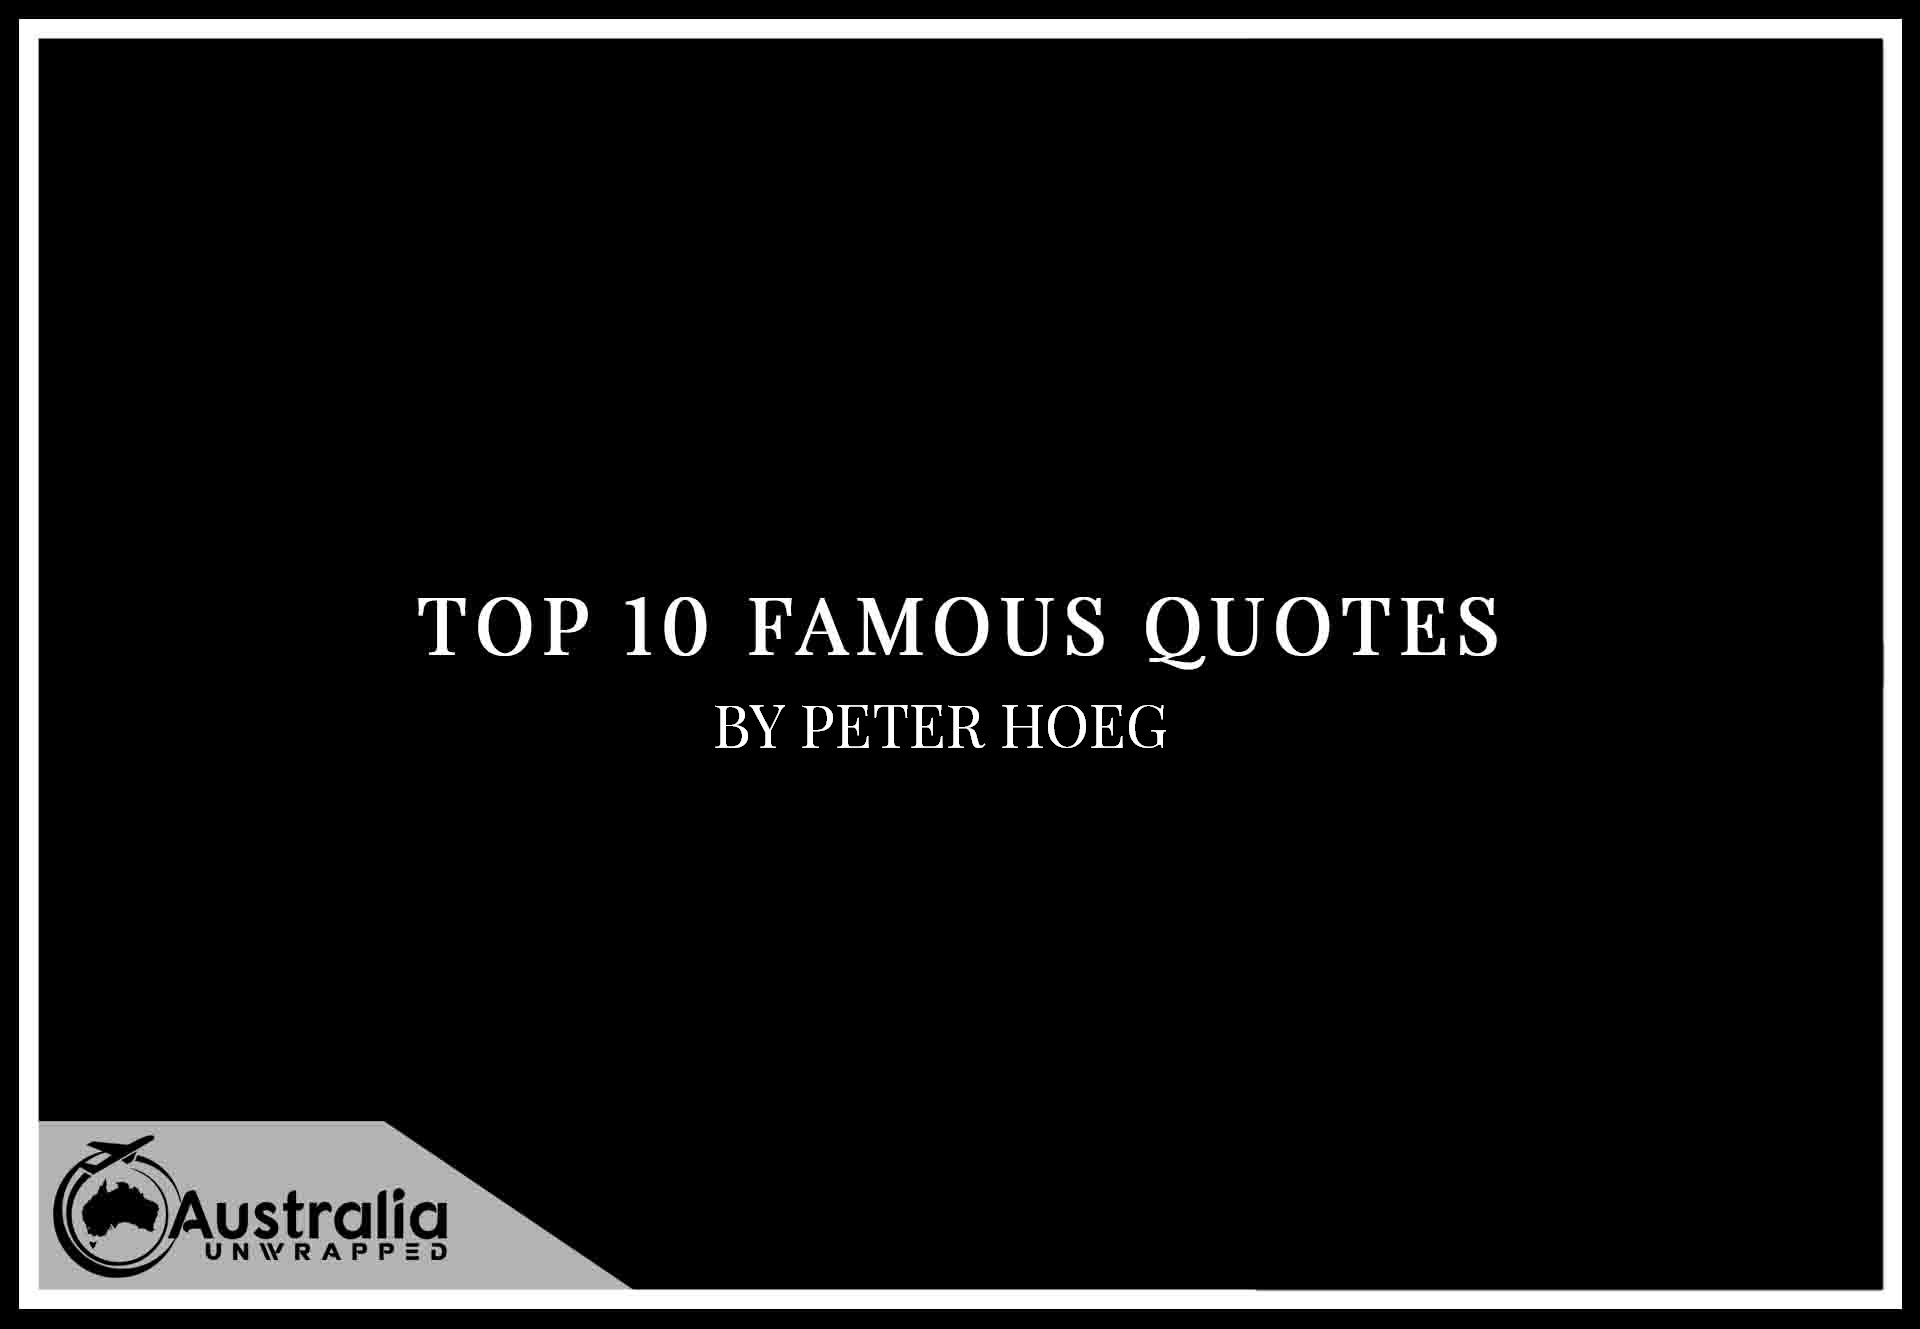 Top 10 Famous Quotes by Author Peter Høeg